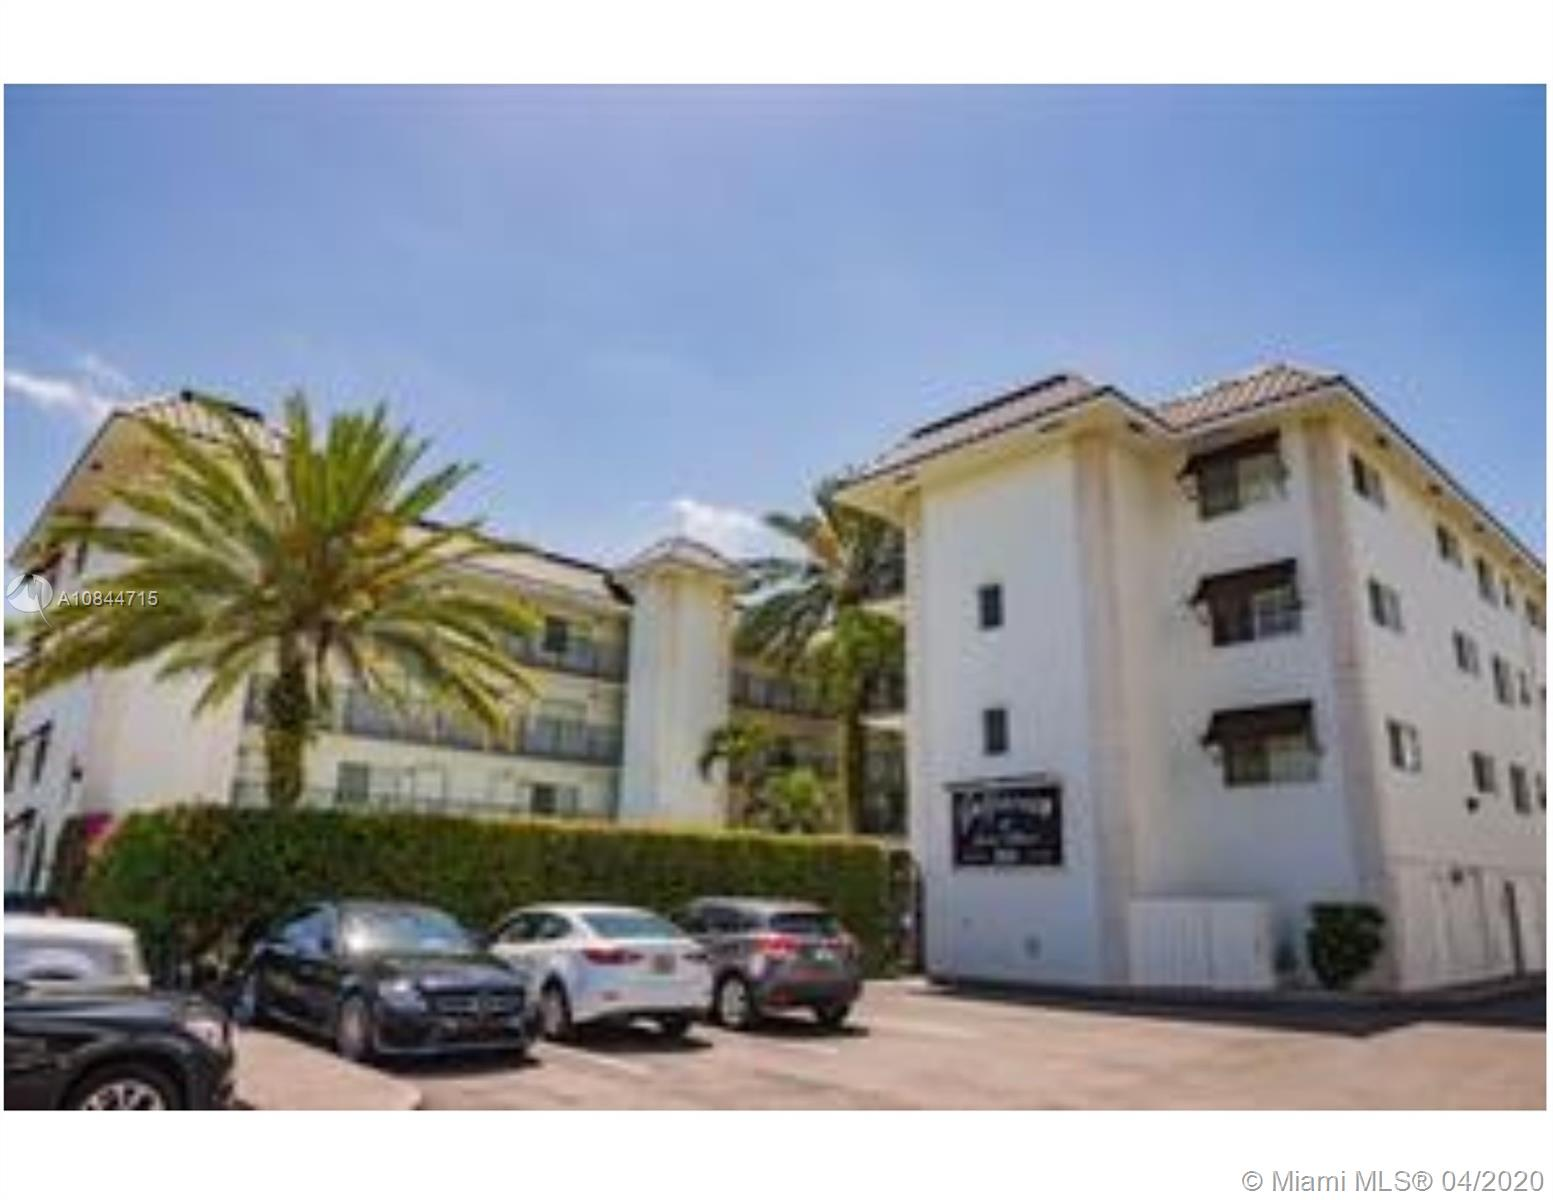 924 SE 2nd St #4 For Sale A10844715, FL